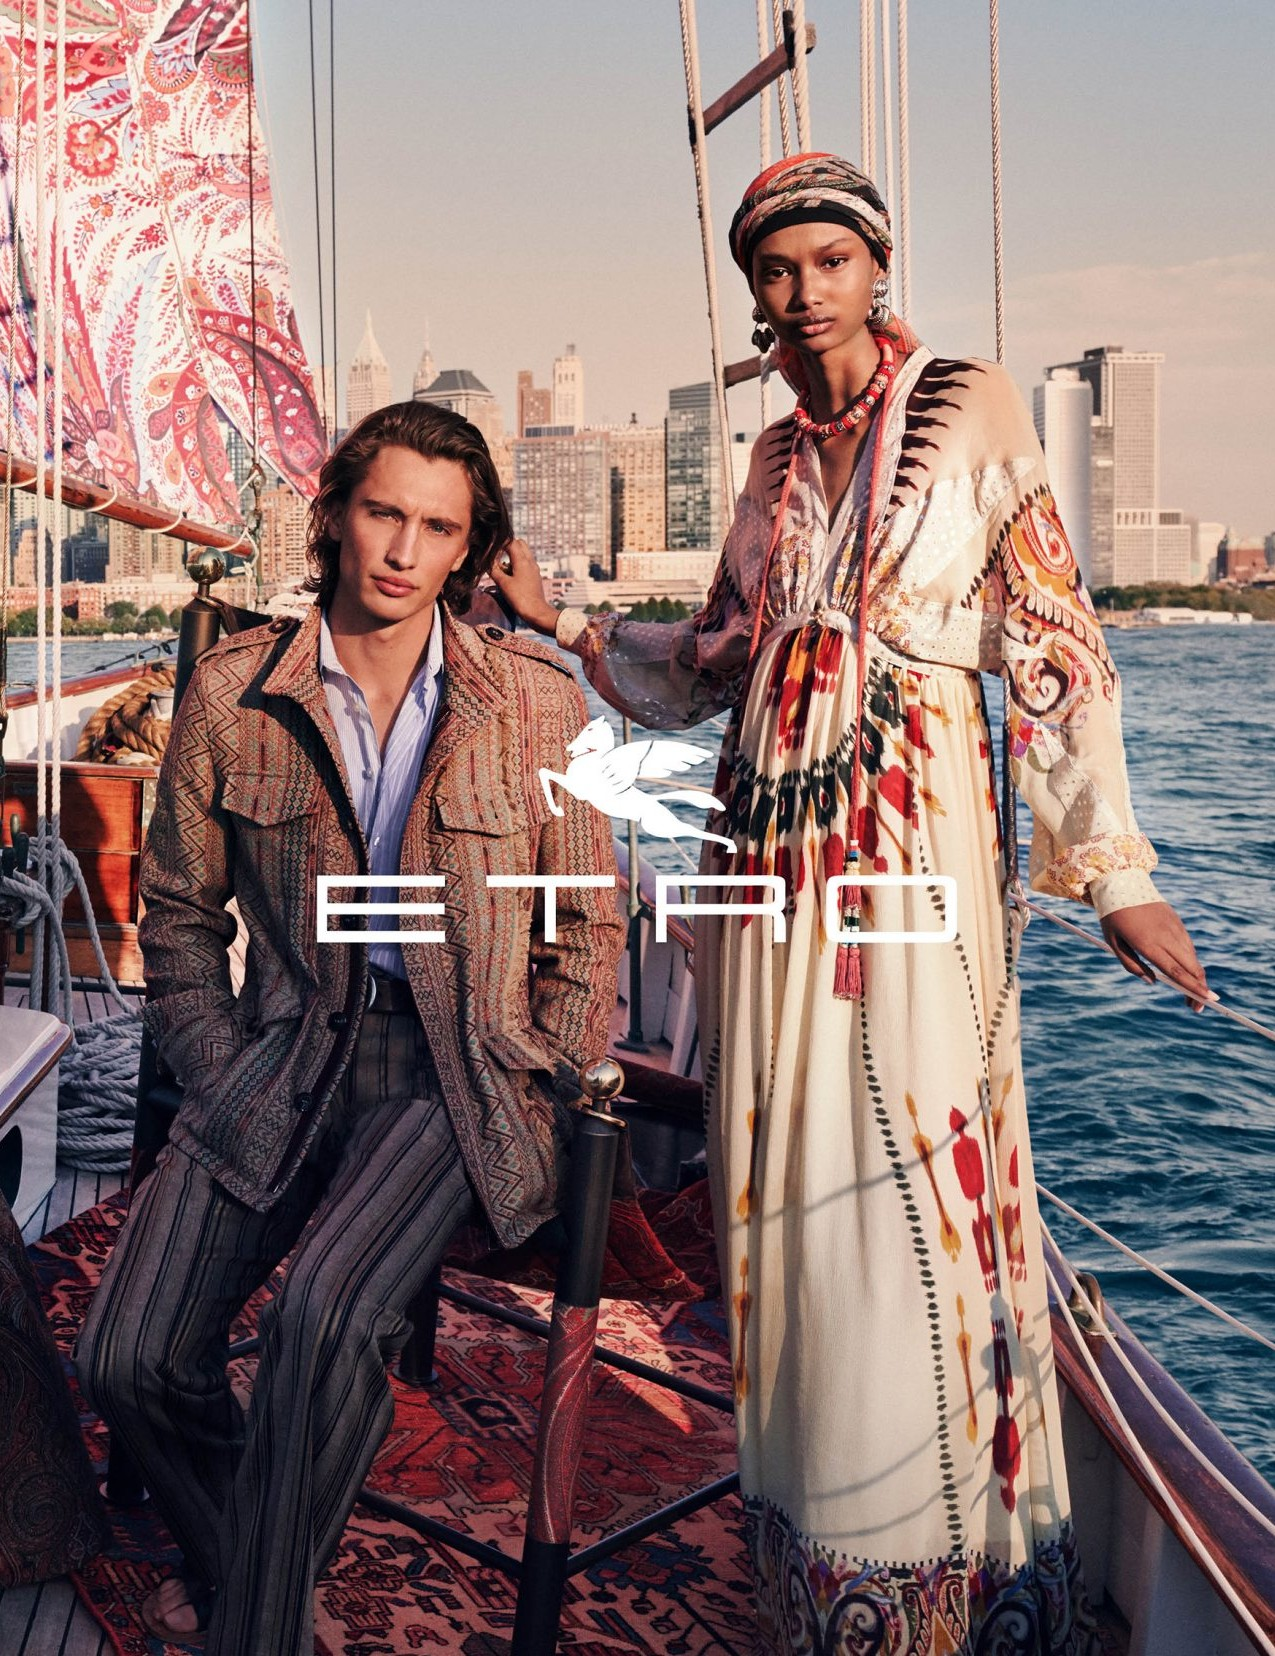 Etro Campagne Printemps-Été 2020 - James Turlington